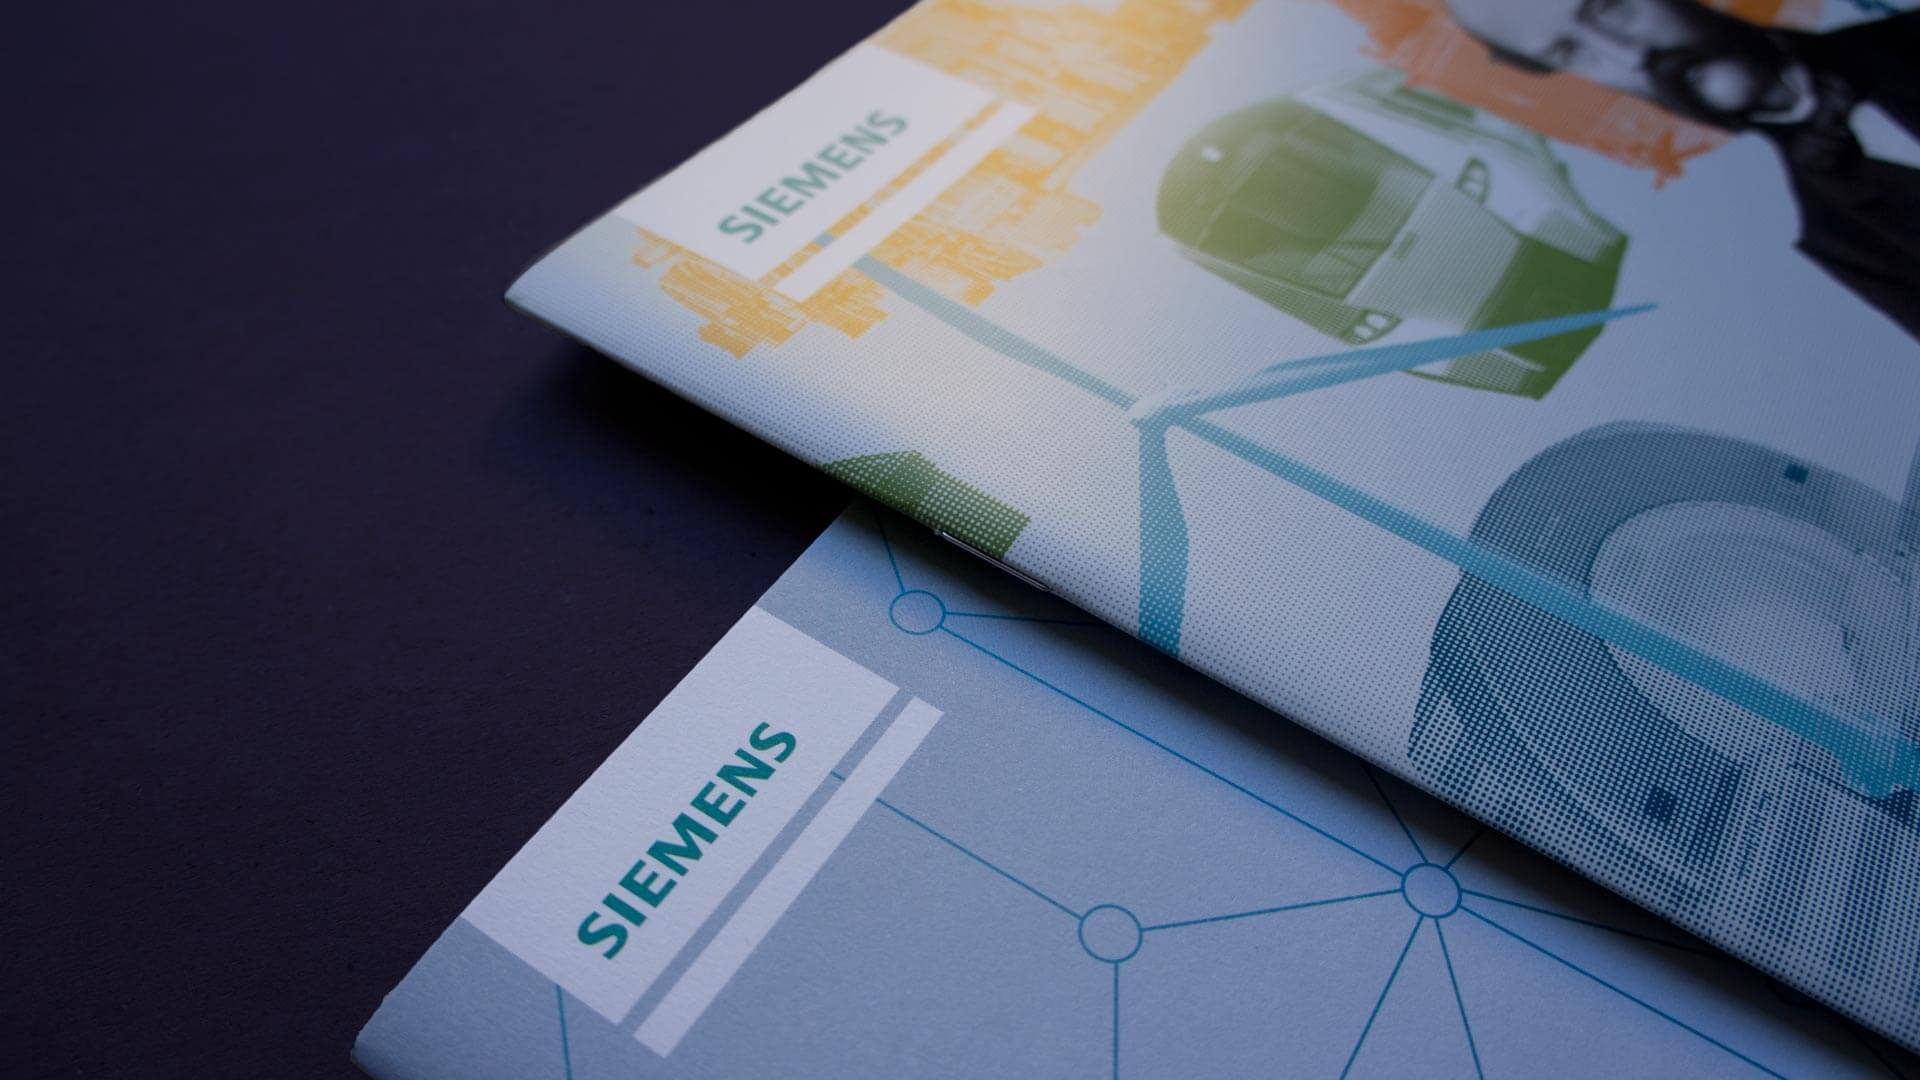 Closeup Photo of the Covers of SFS Publications